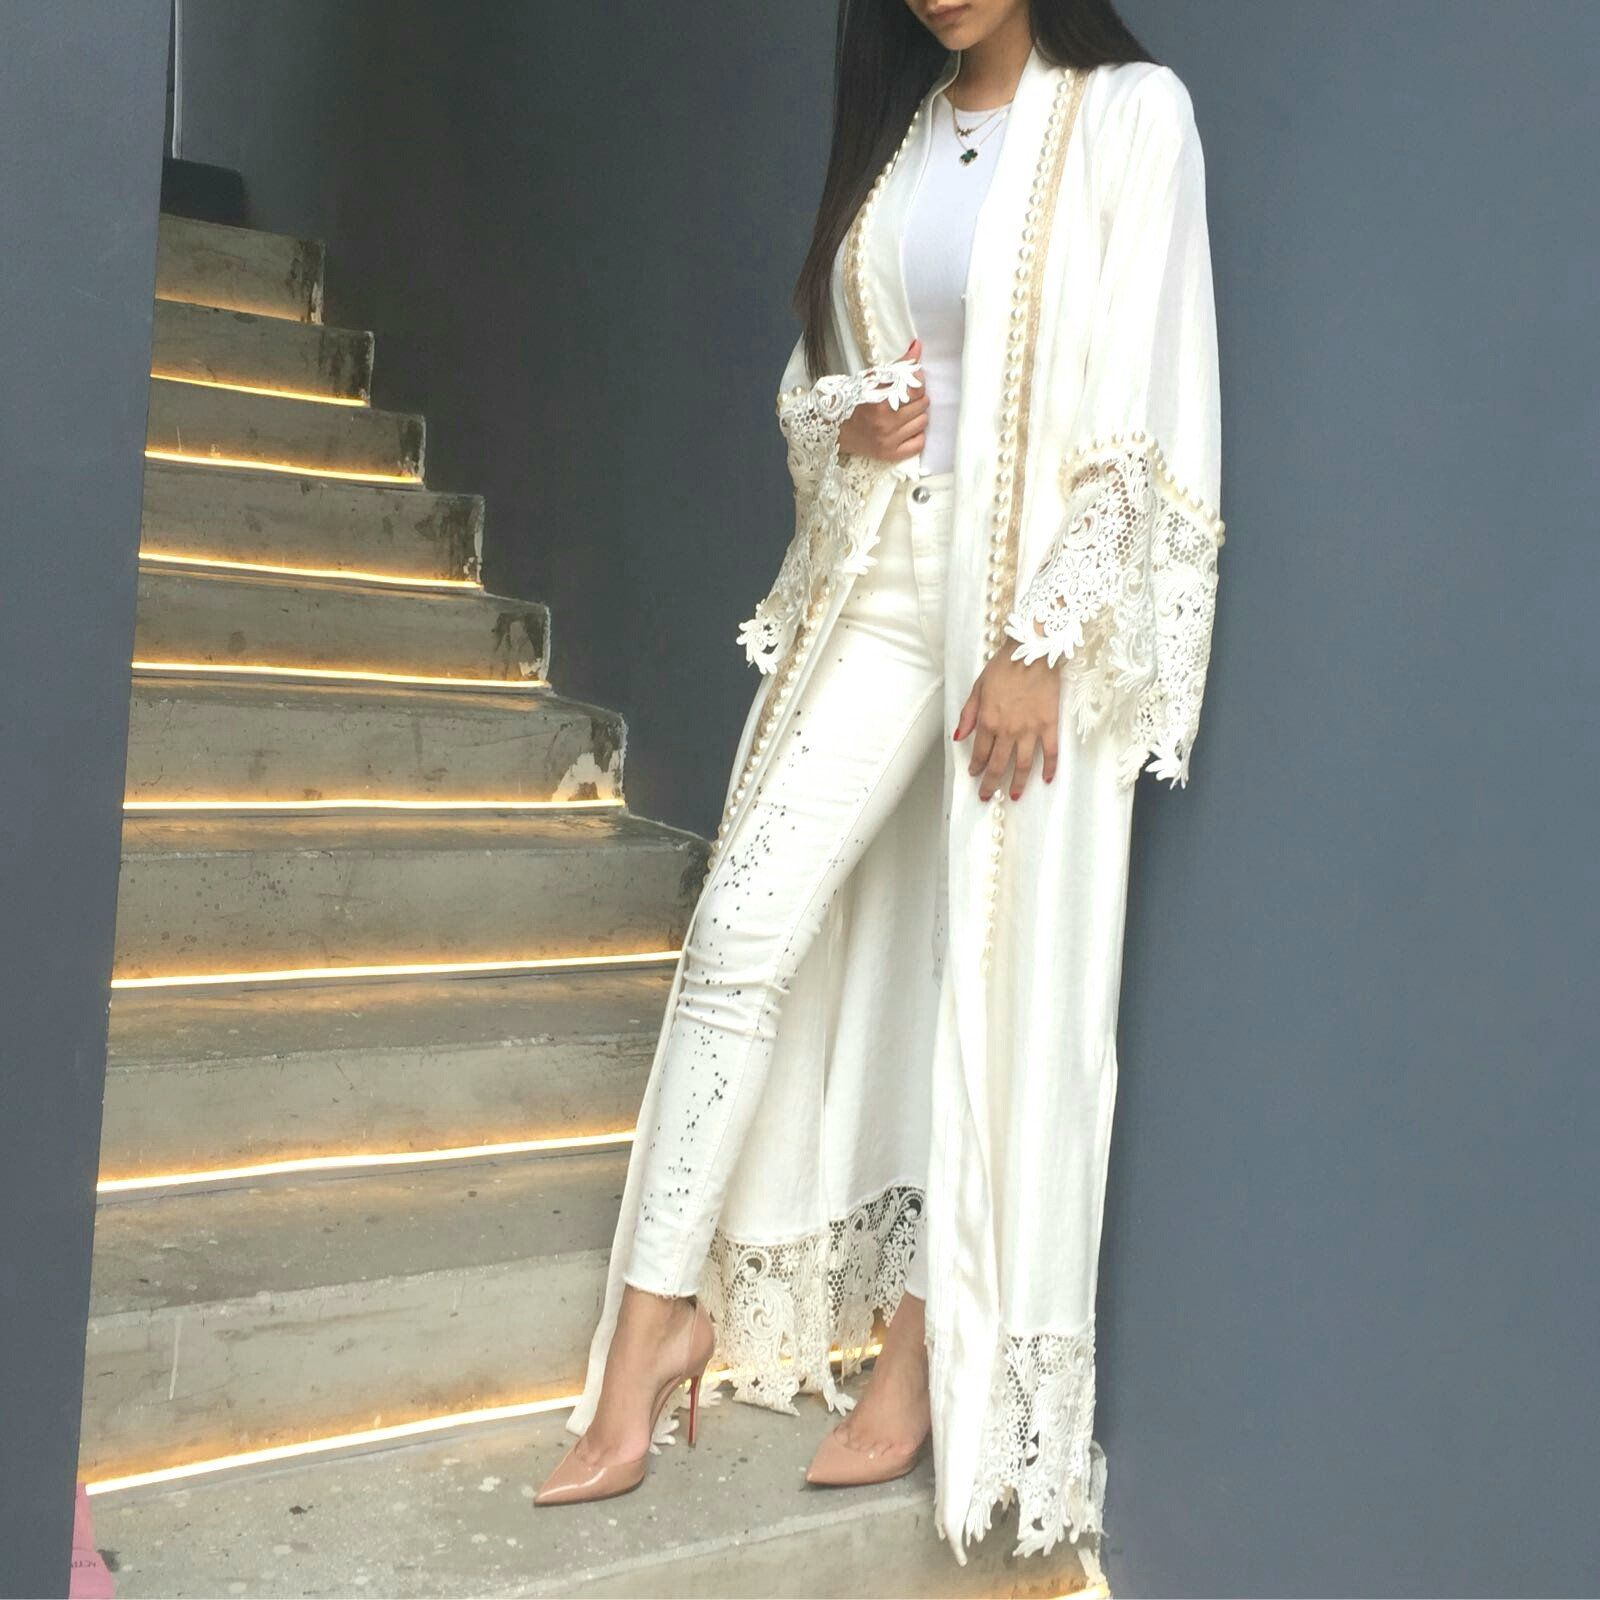 Silver pearl marisol white lace 1 - Limited Edition White Silk Mix Abaya With French Lace Pearls